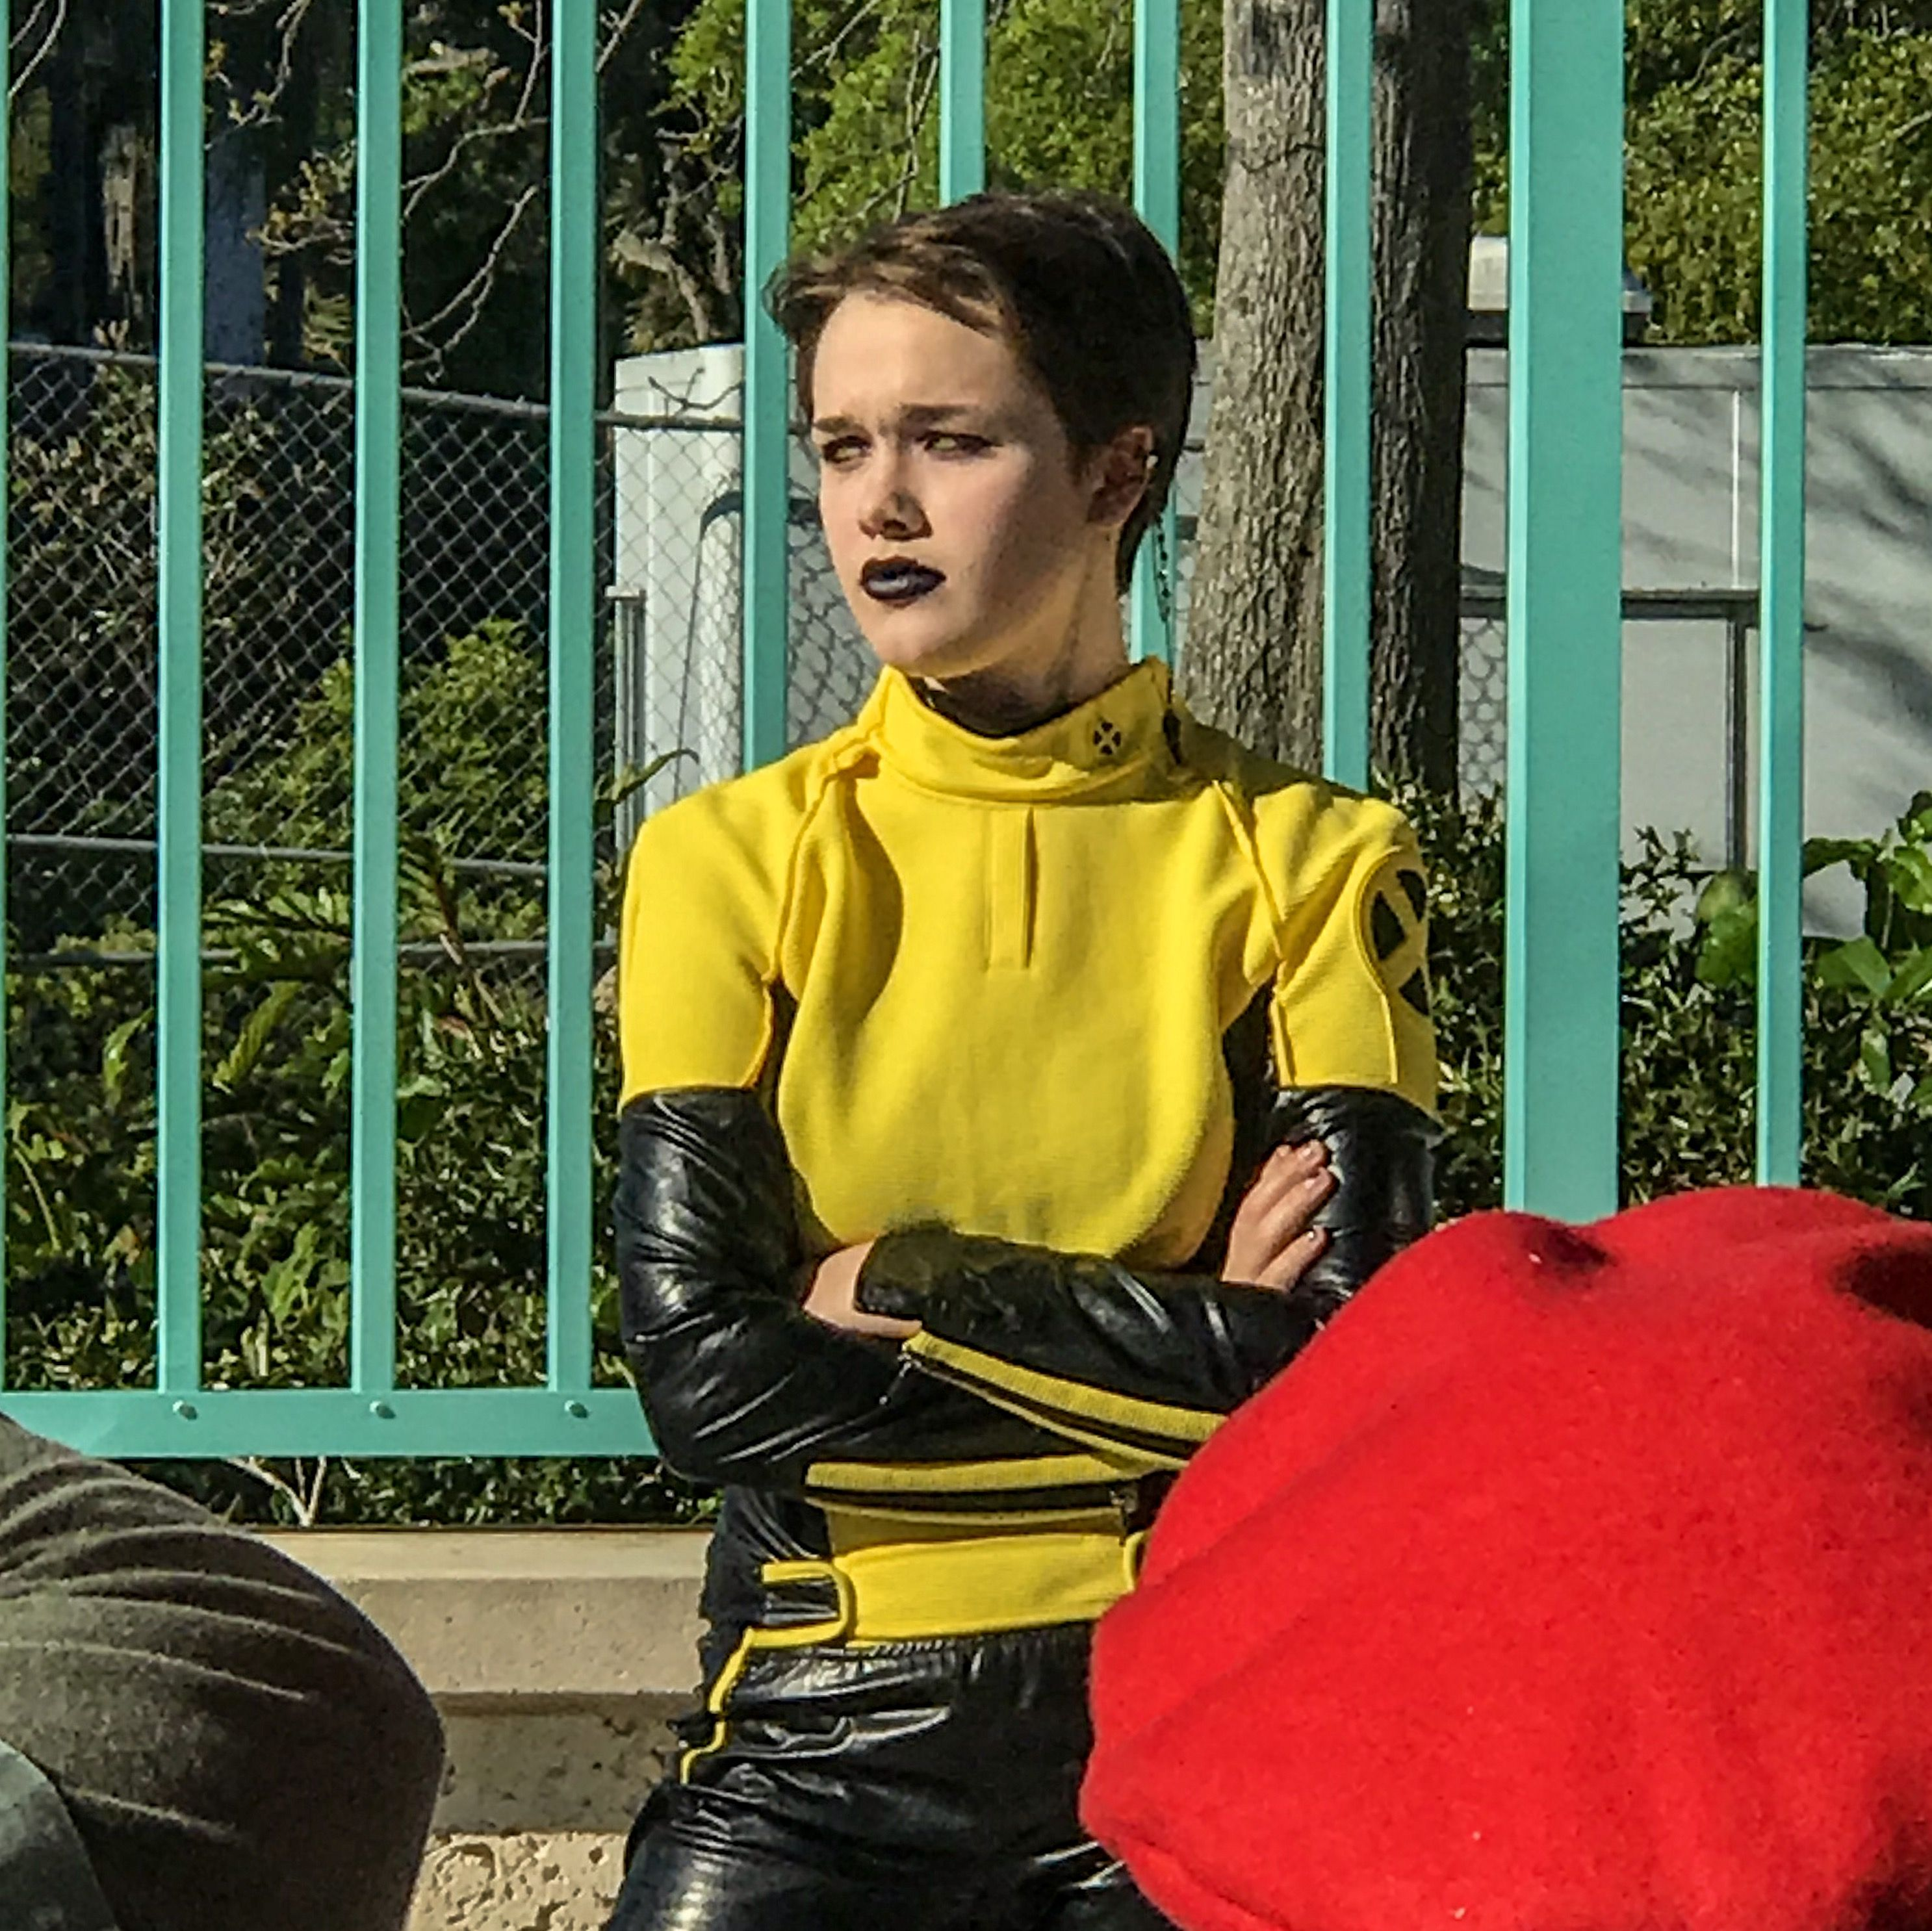 An amazing cosplay of Negasonic Teenage Warhead right here at Clearwater Comic Con 2018! # ...